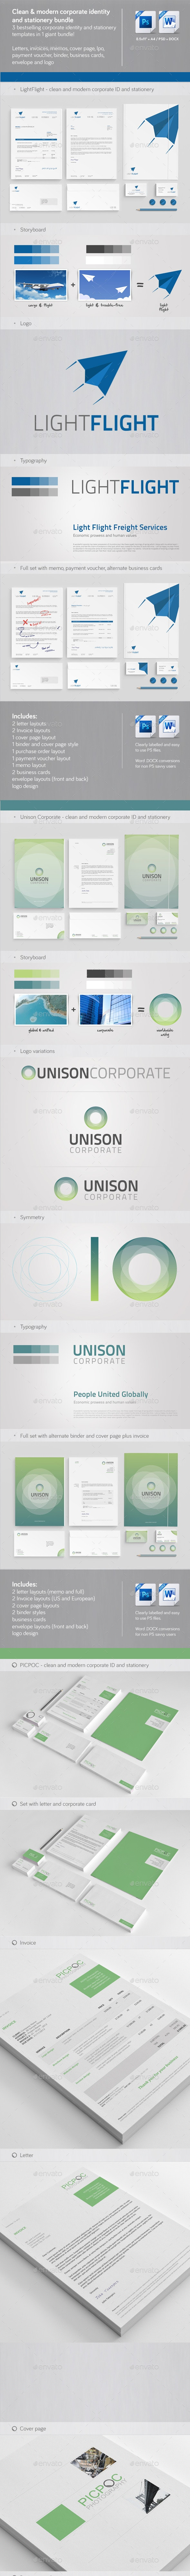 Clean & Modern Corporate ID & Stationery Bundle  1 - Stationery Print Templates